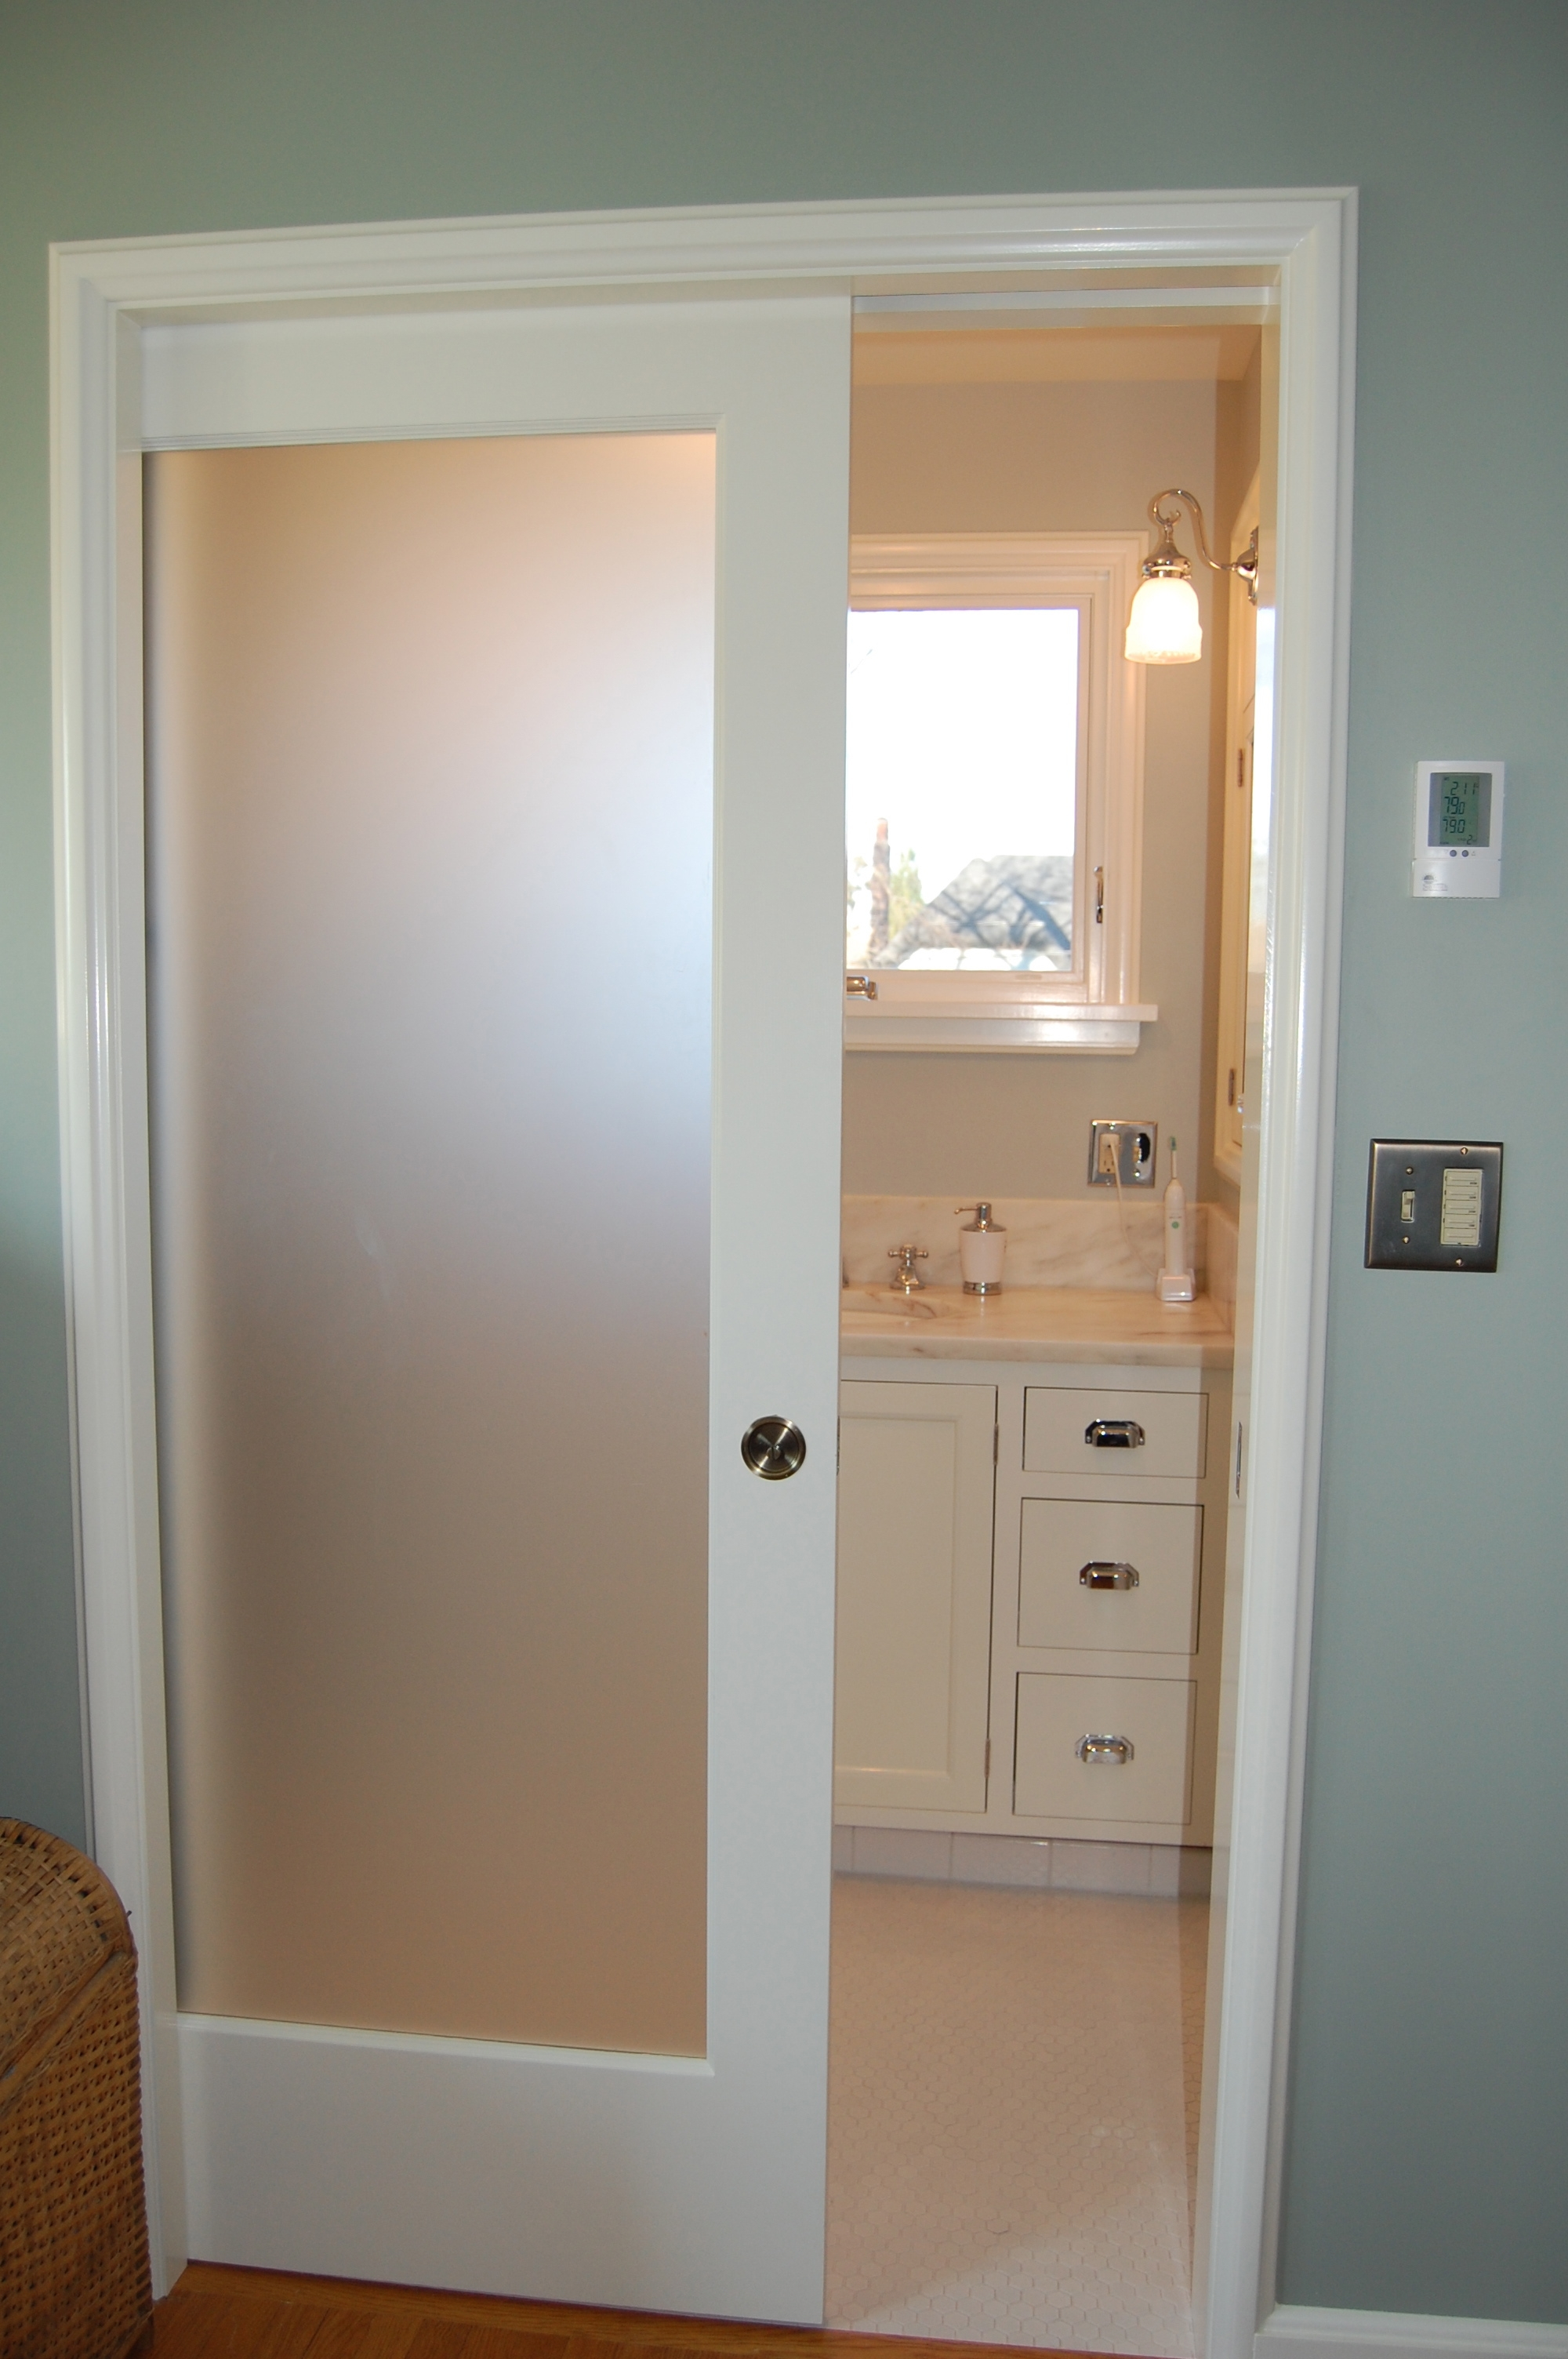 Permalink to Bathrooms With Pocket Doors